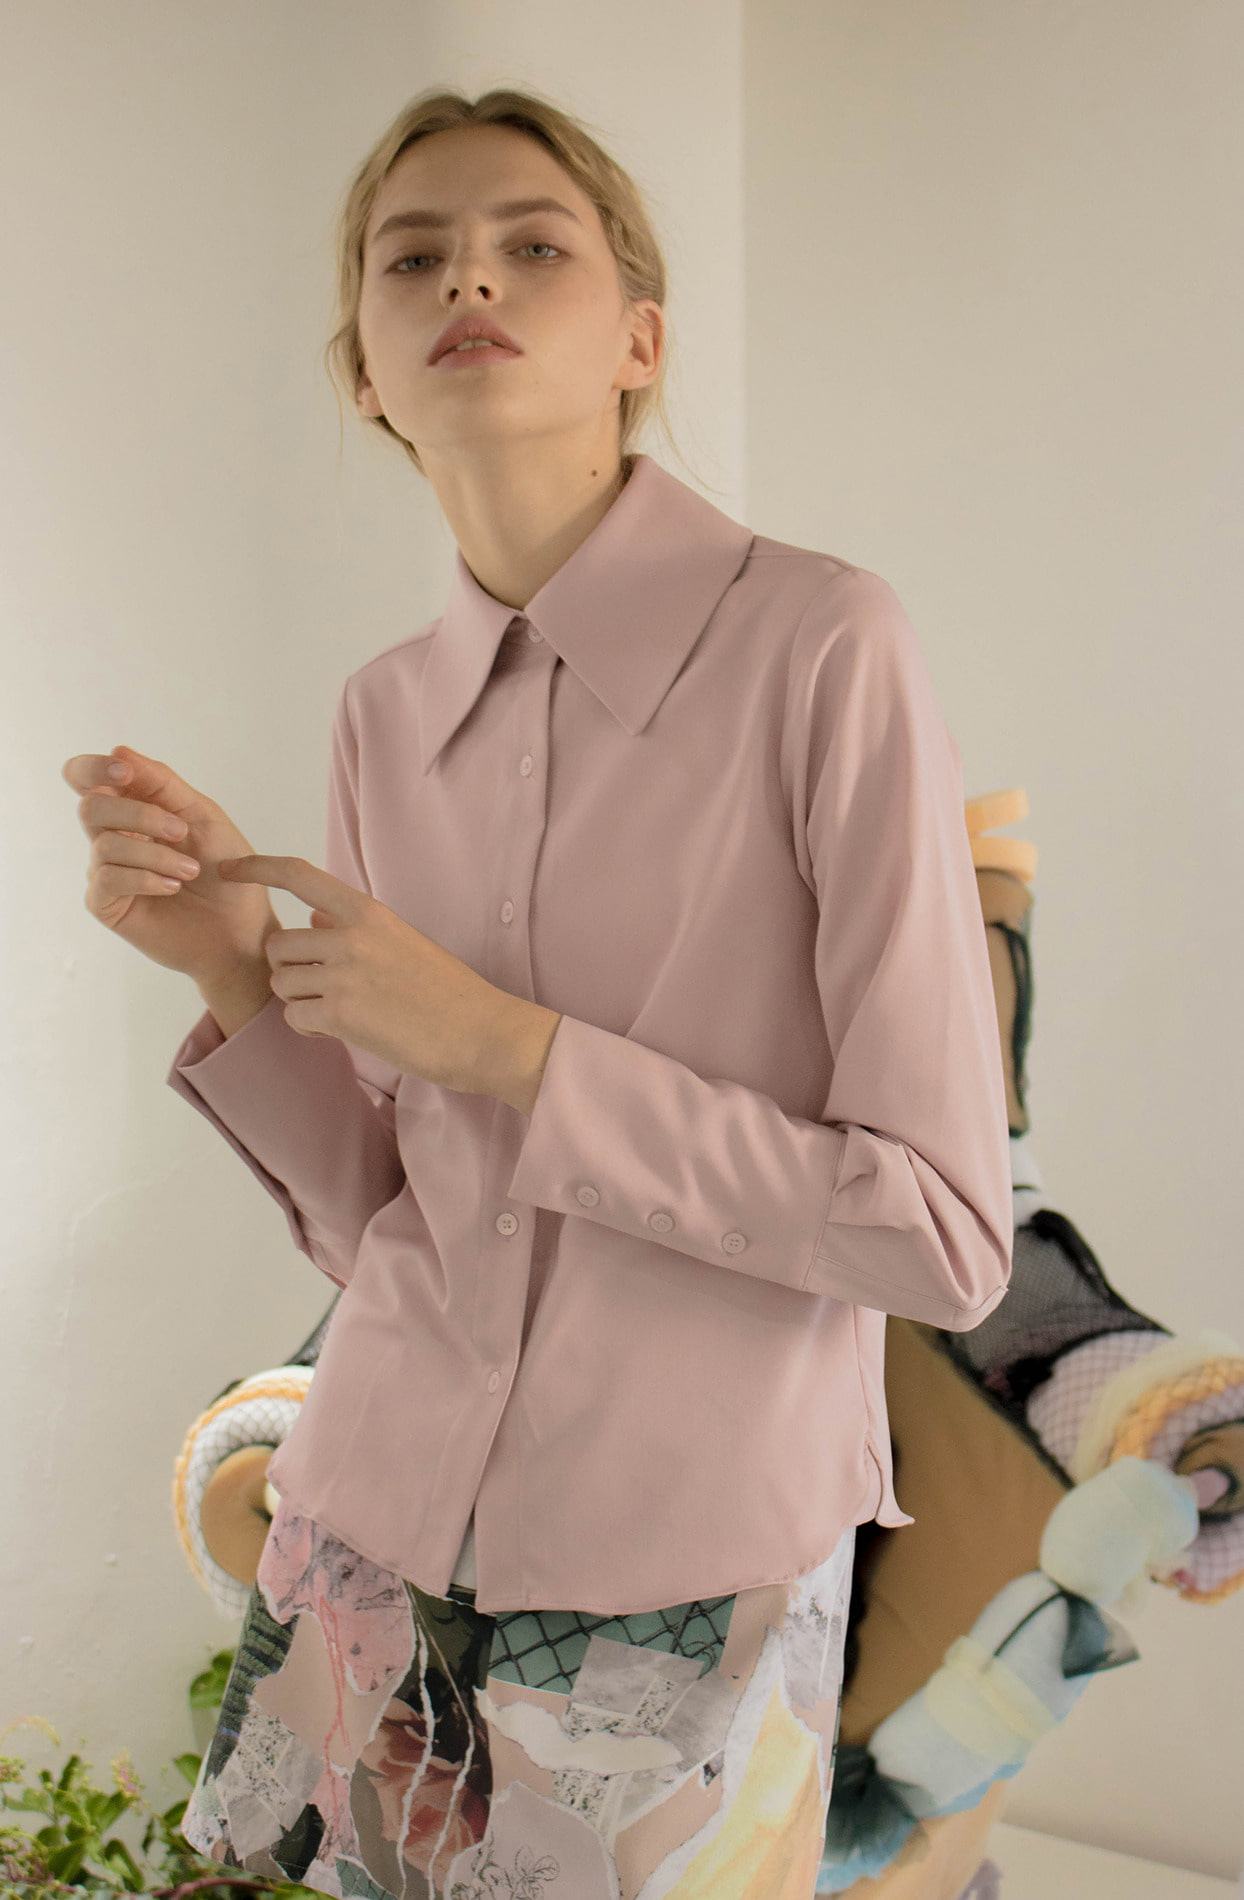 Soap blouse (pink)